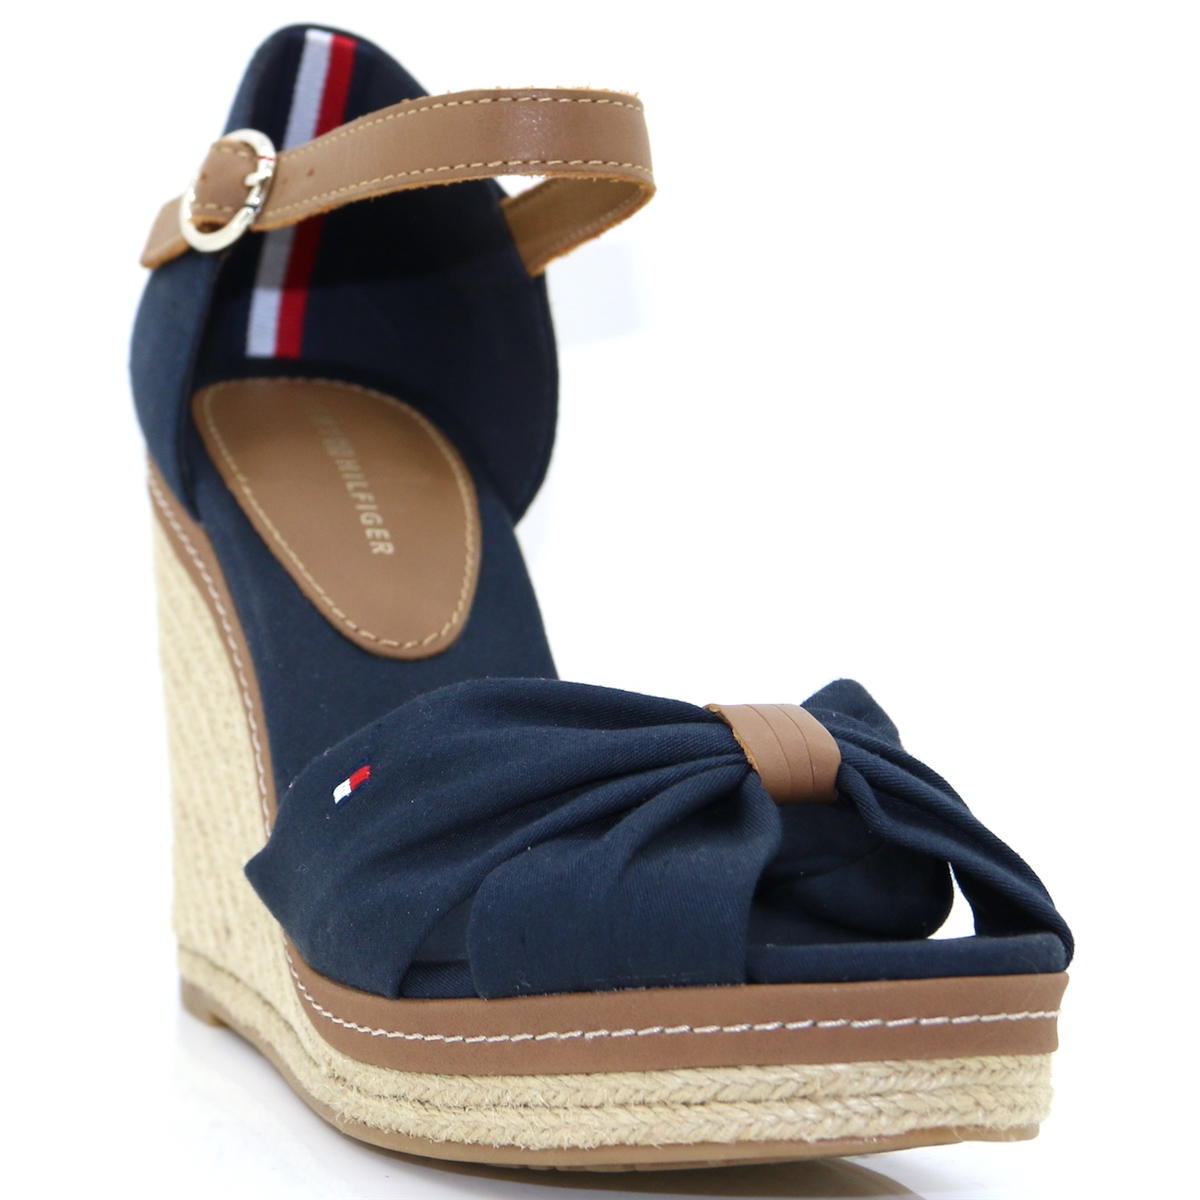 0dd4f92ad Iconic Elena Sandal - Tommy Hilfiger MIDNIGHT WEDGES - Panache Shoe Company